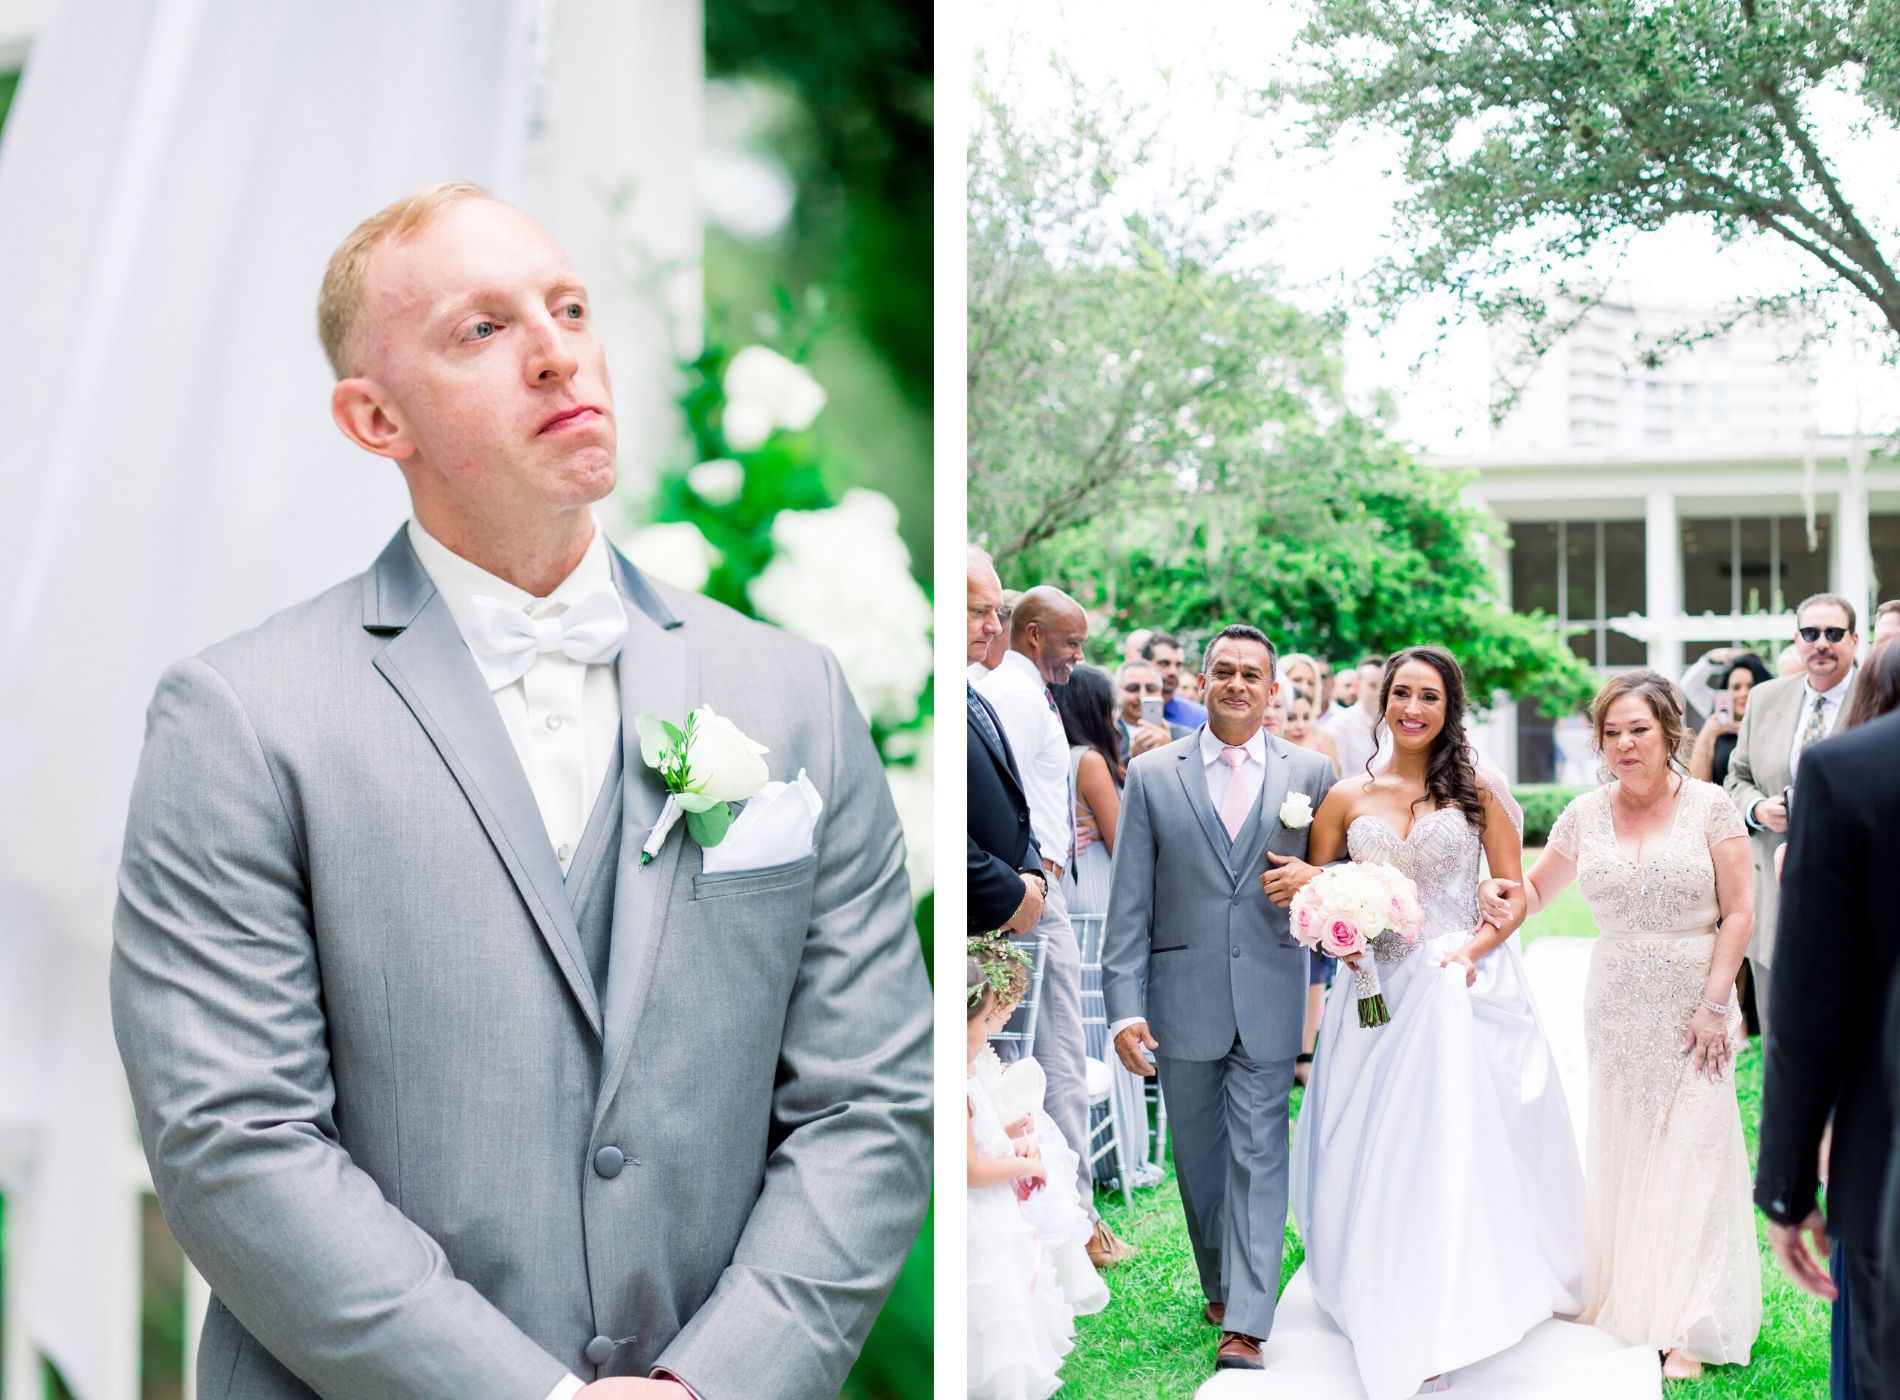 Groom in Gray Suit Reaction to Bride Walking Down the Aisle, Bride with Parents Processional Wedding Portrait | Wedding Venue Tampa Garden Club | Wedding Photographer Shauna and Jordon Photography | Wedding Dress Truly Forever Bridal